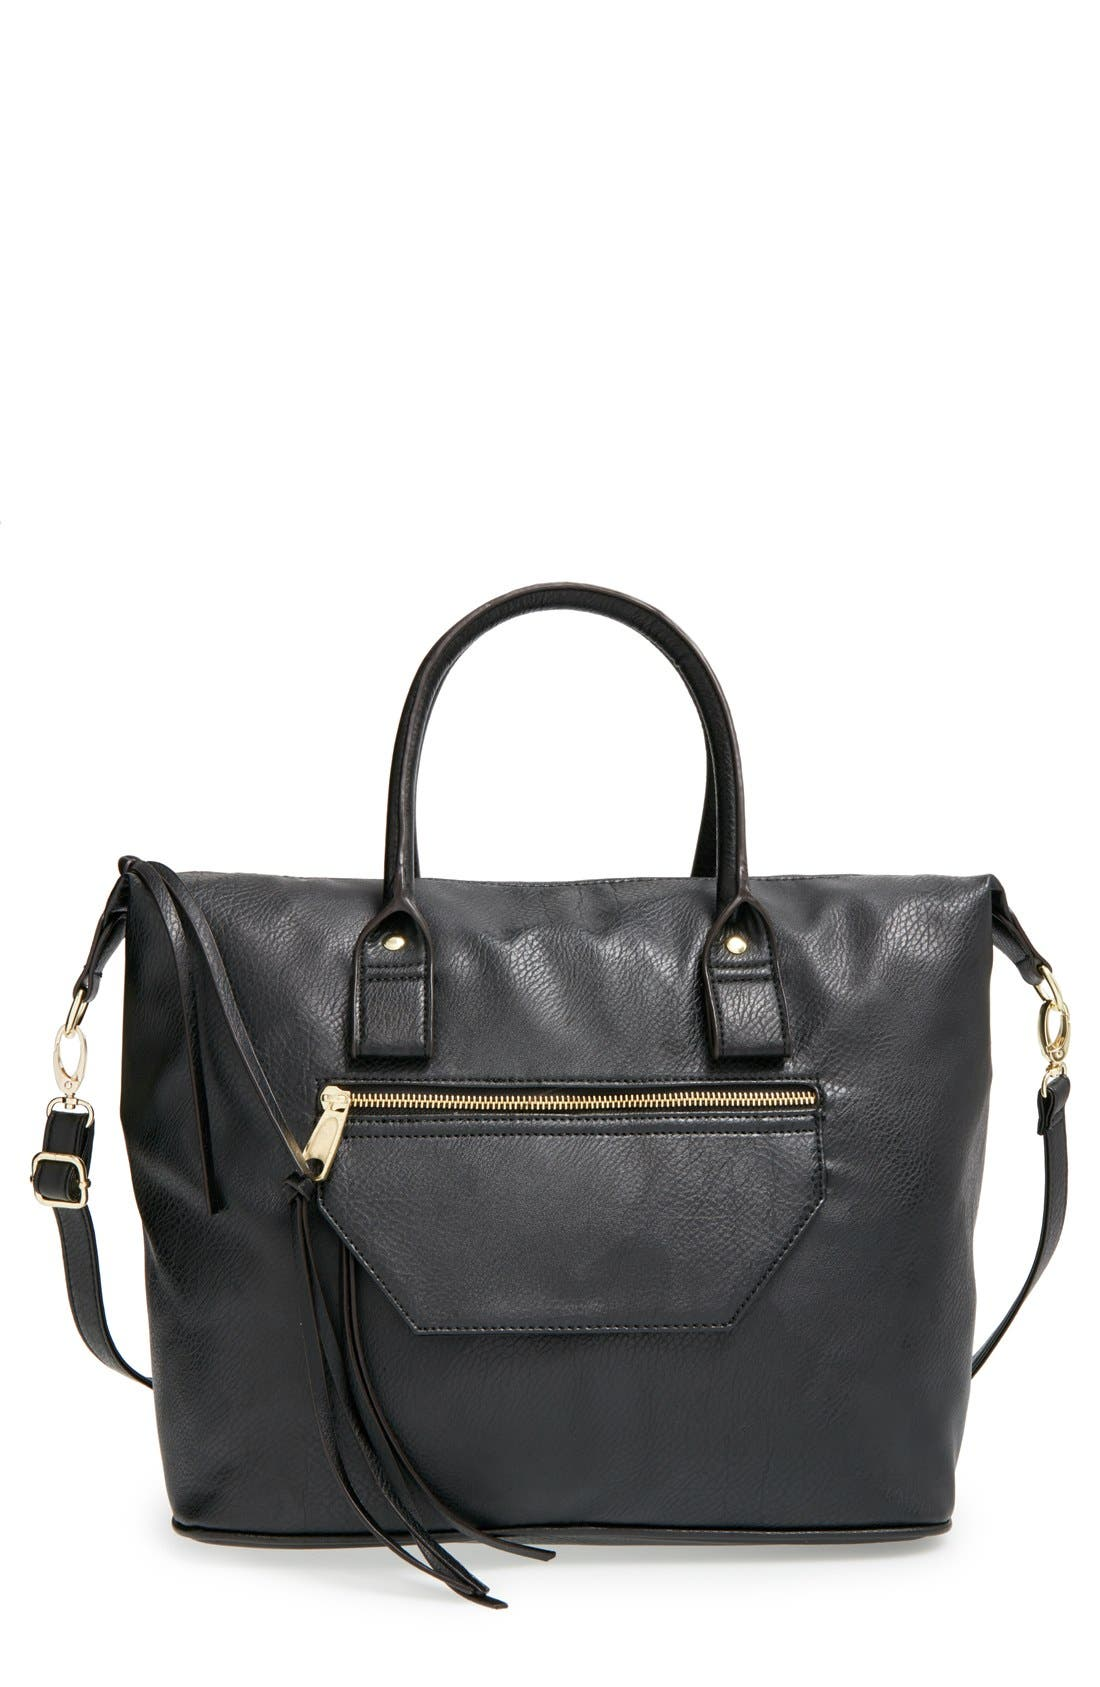 Alternate Image 1 Selected - BP. Faux Leather Satchel